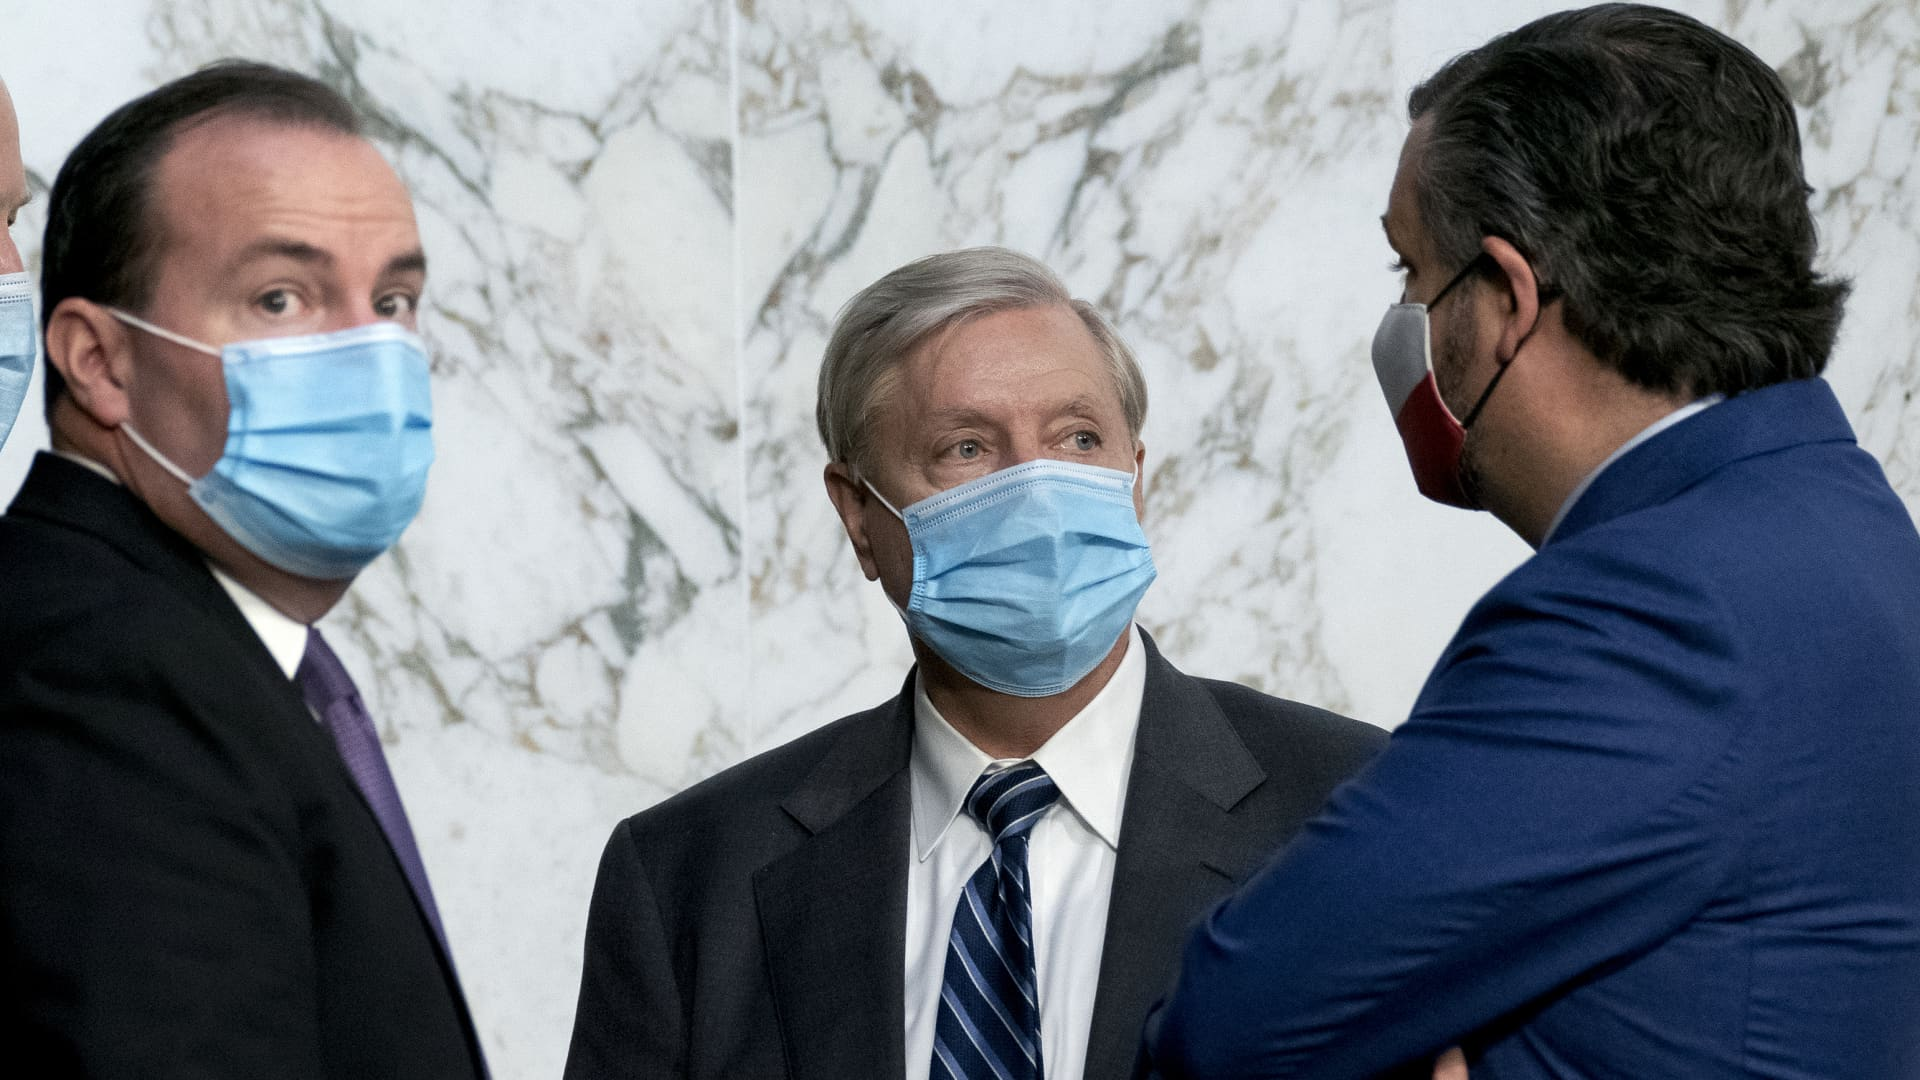 From left, Senator Mike Lee, a Republican from Utah, Senator Lindsey Graham, a Republican from South Carolina and chairman of the Senate Judiciary Committee, and Senator Ted Cruz, a Republican from Texas, wear protective masks while talking during a break of a confirmation hearing in Washington, D.C., U.S., on Wednesday, Oct. 14, 2020.